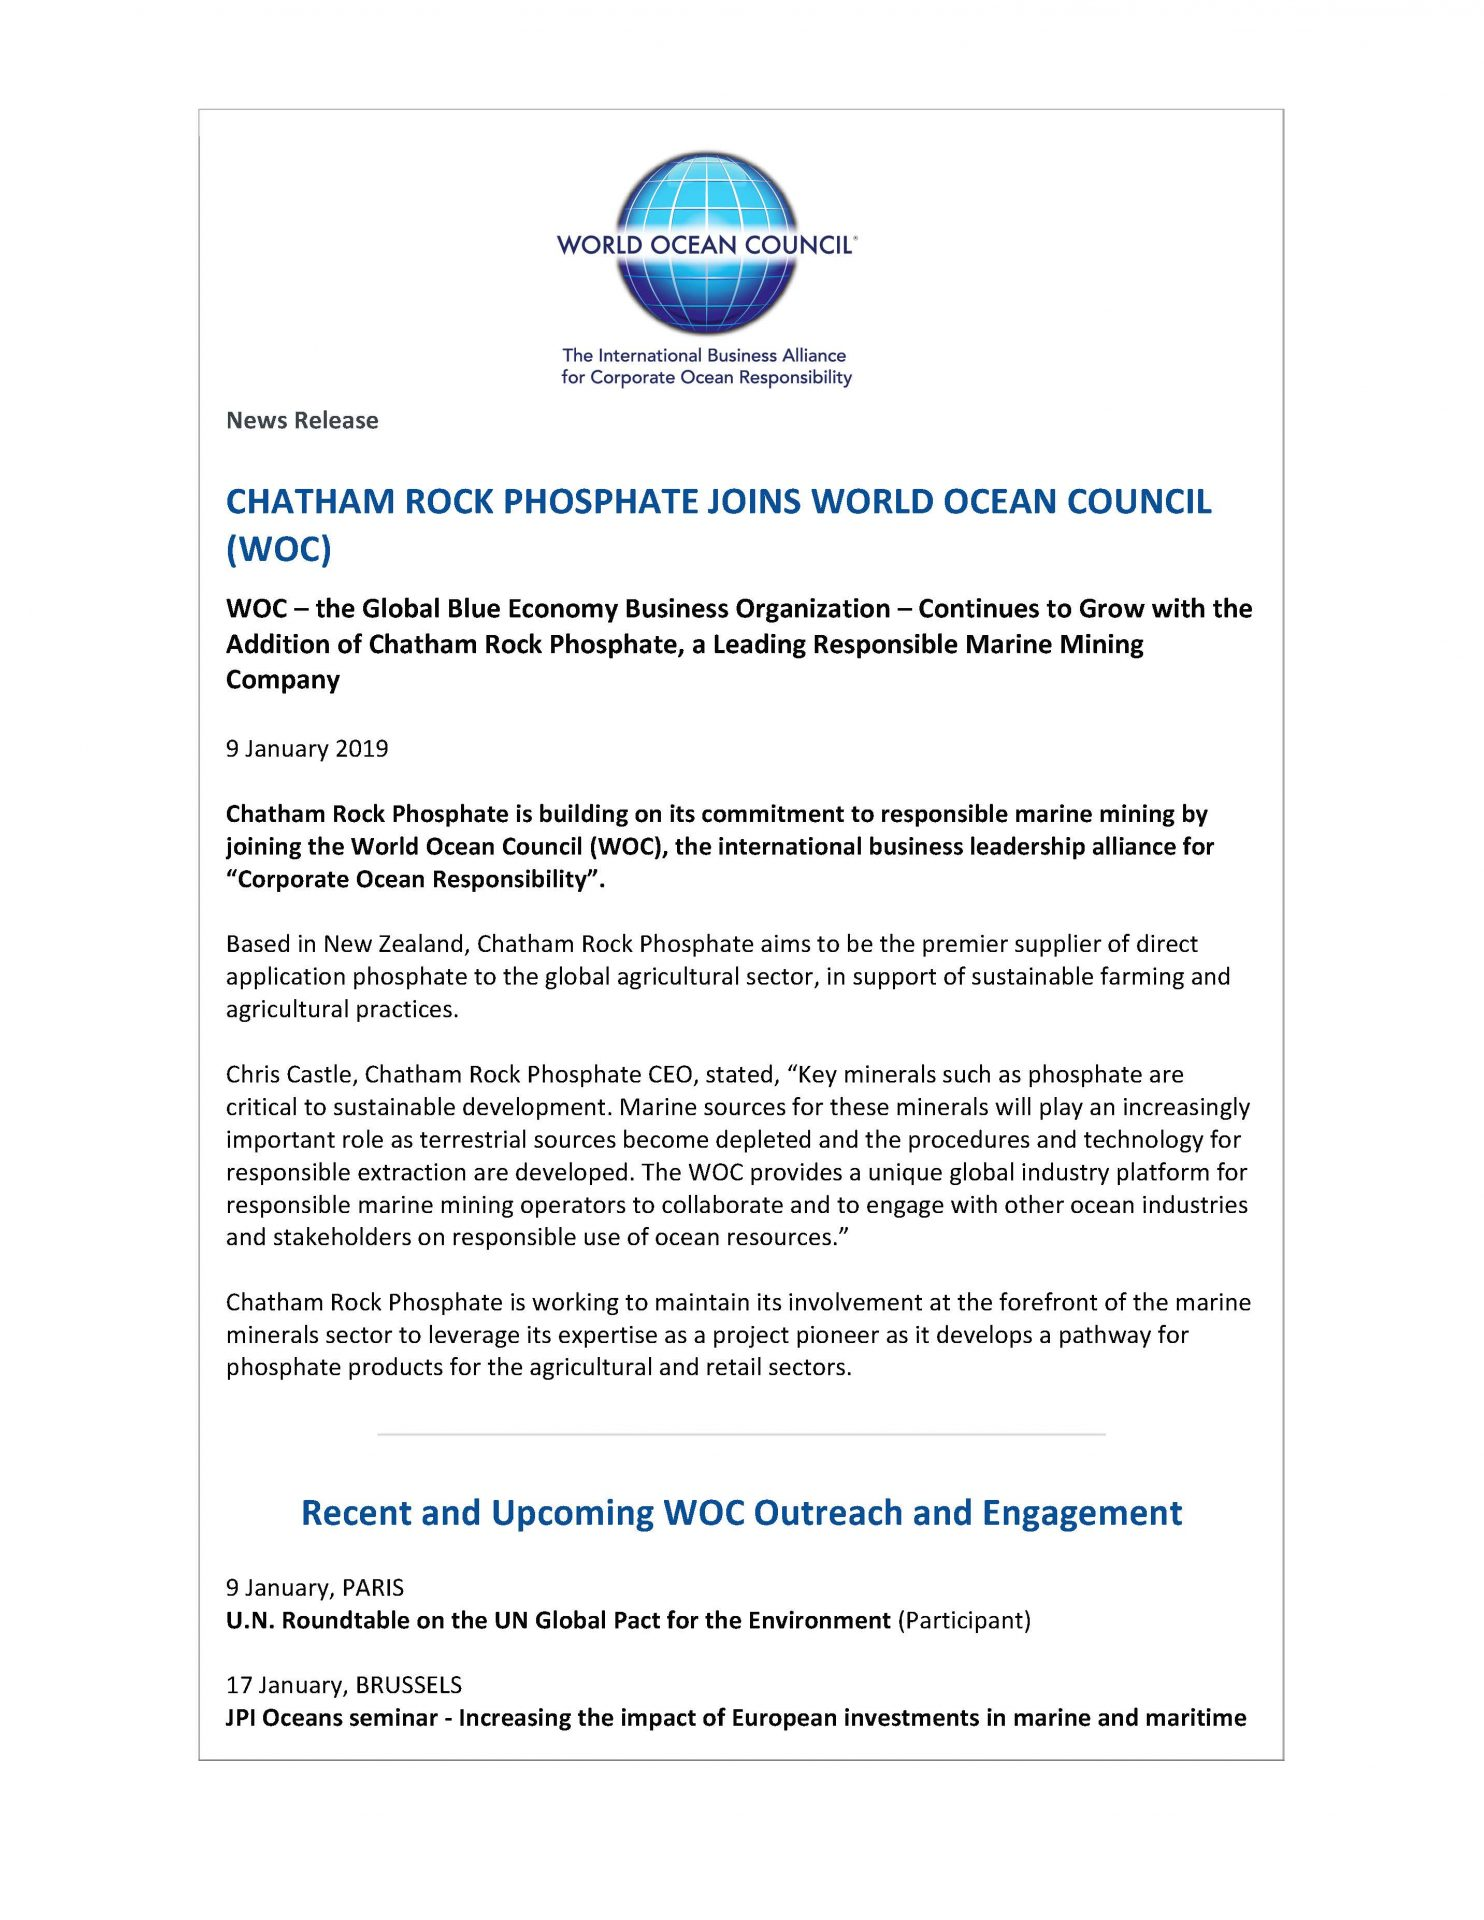 Chatham Rock Phosphate Joins World Ocean Council (WOC) - 9 January 2019